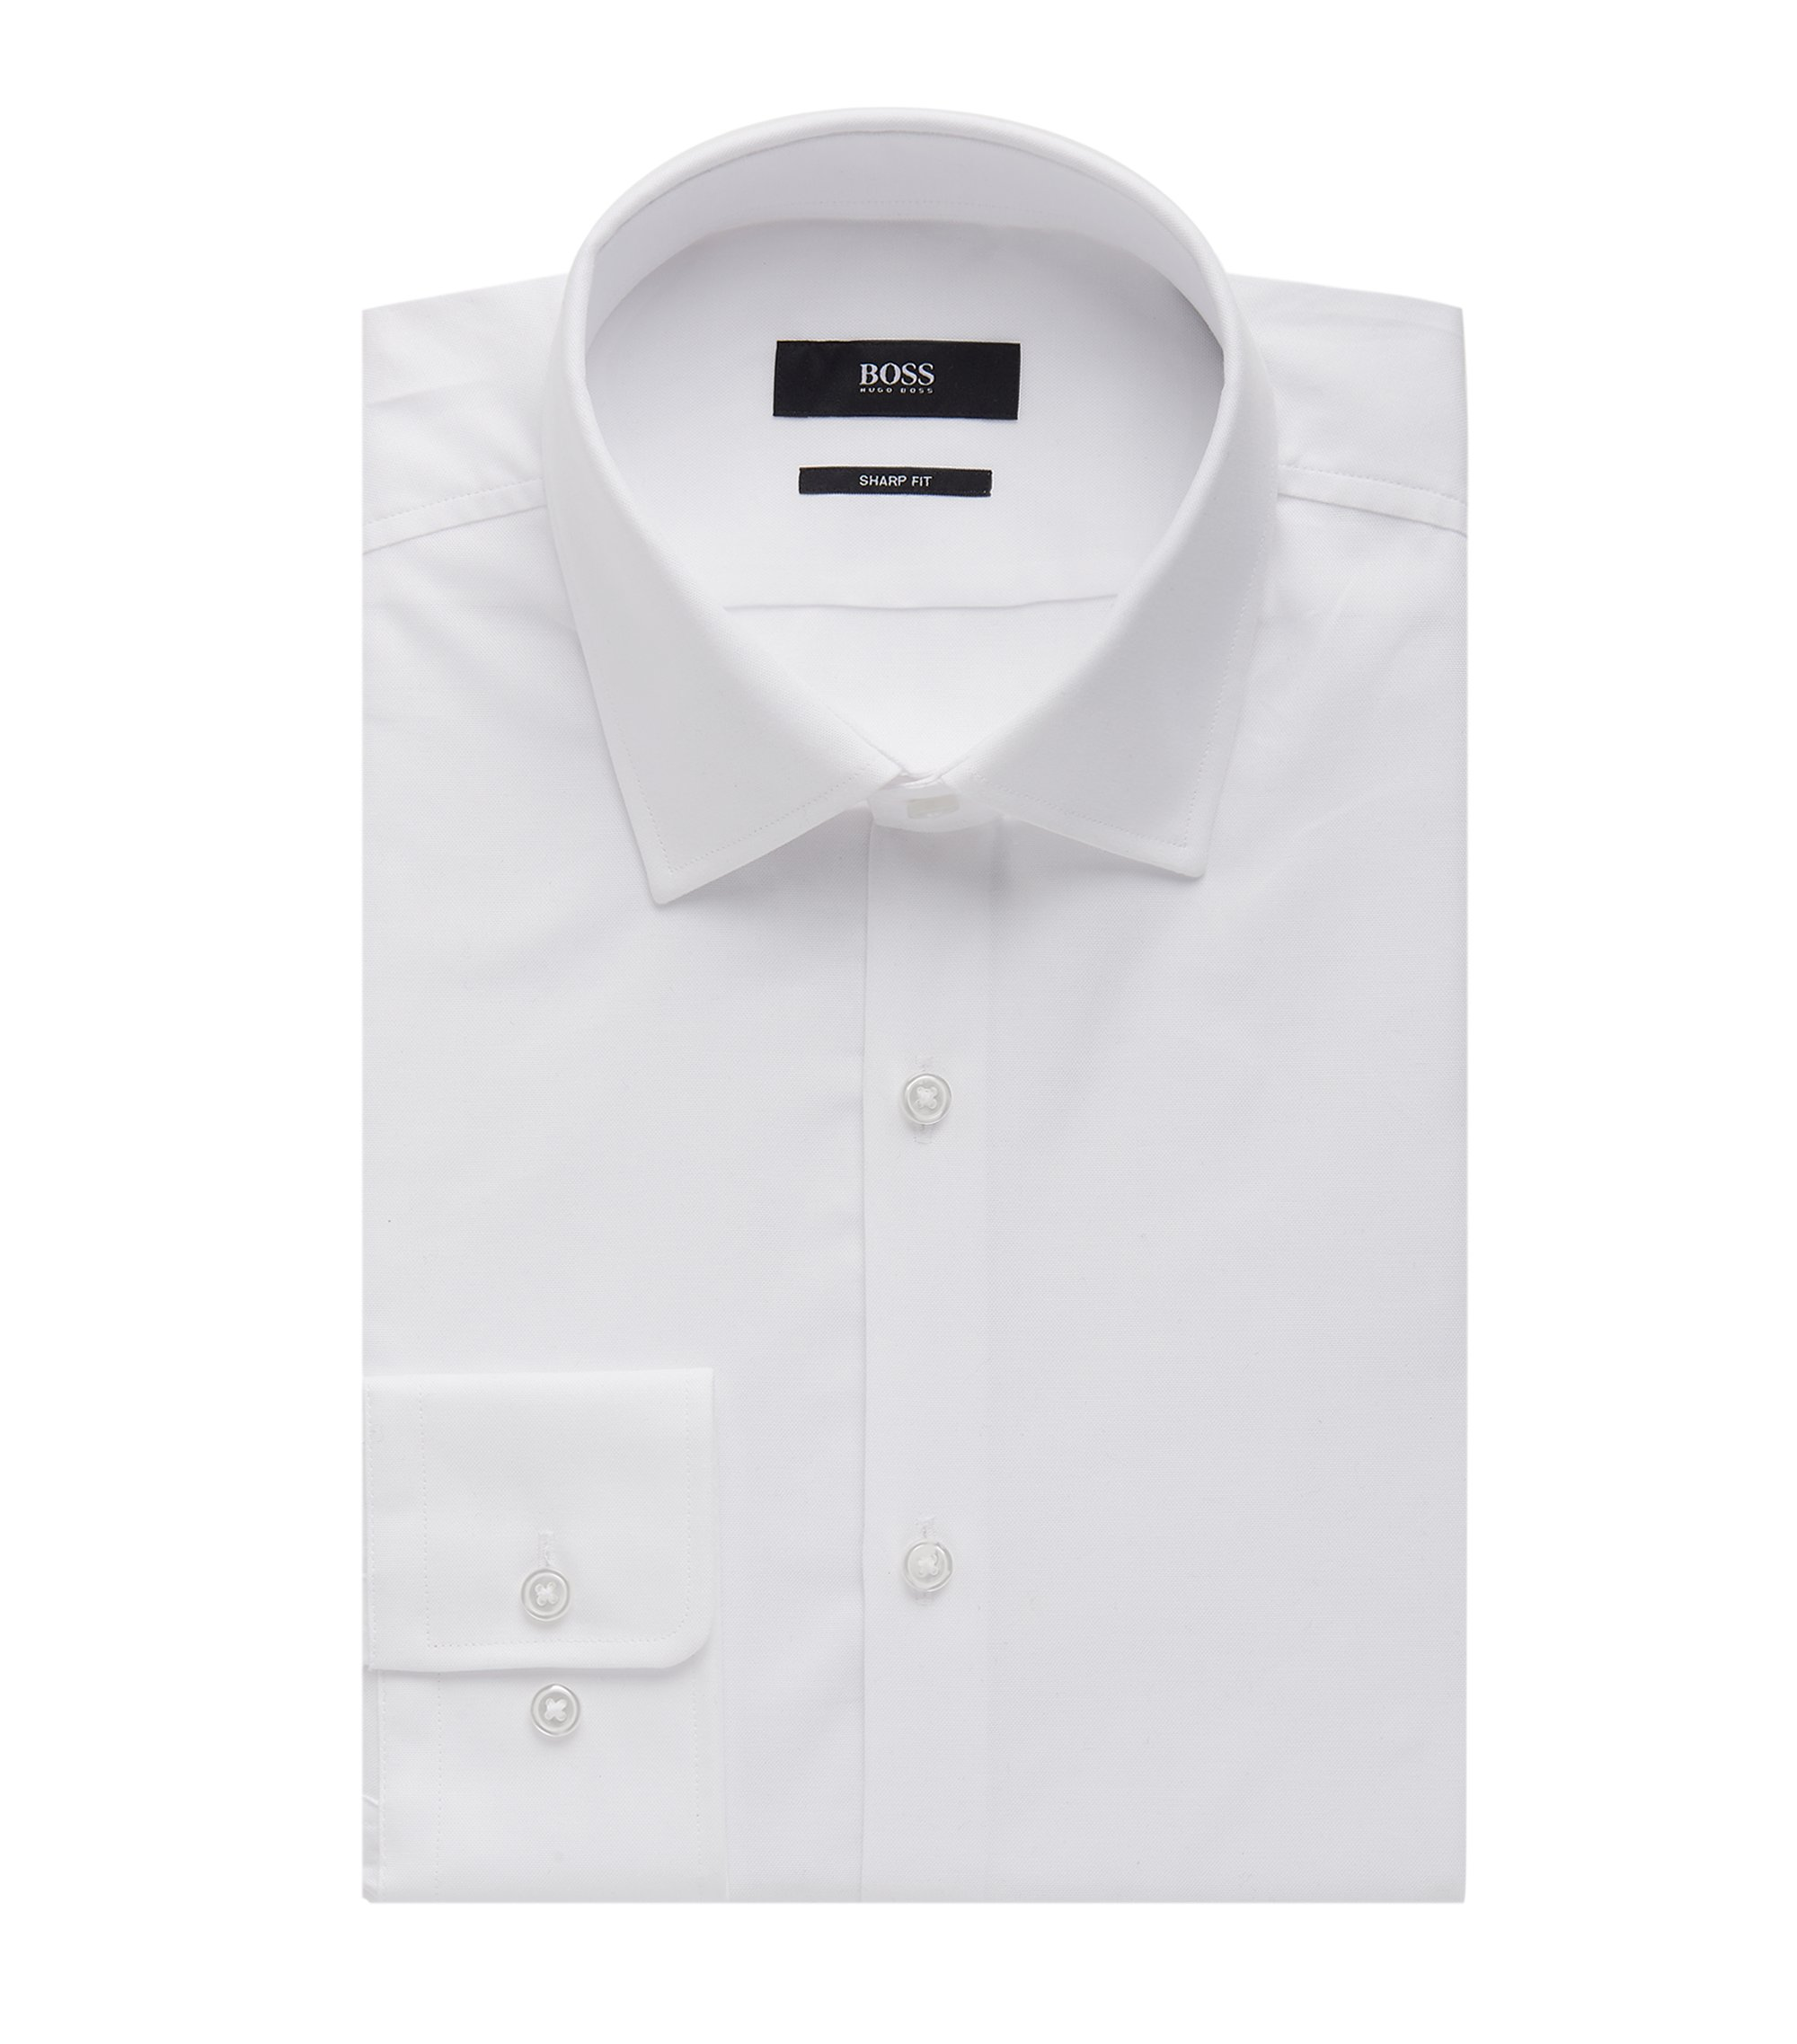 Nailhead Cotton Dress Shirt, Sharp Fit | Marley US, White